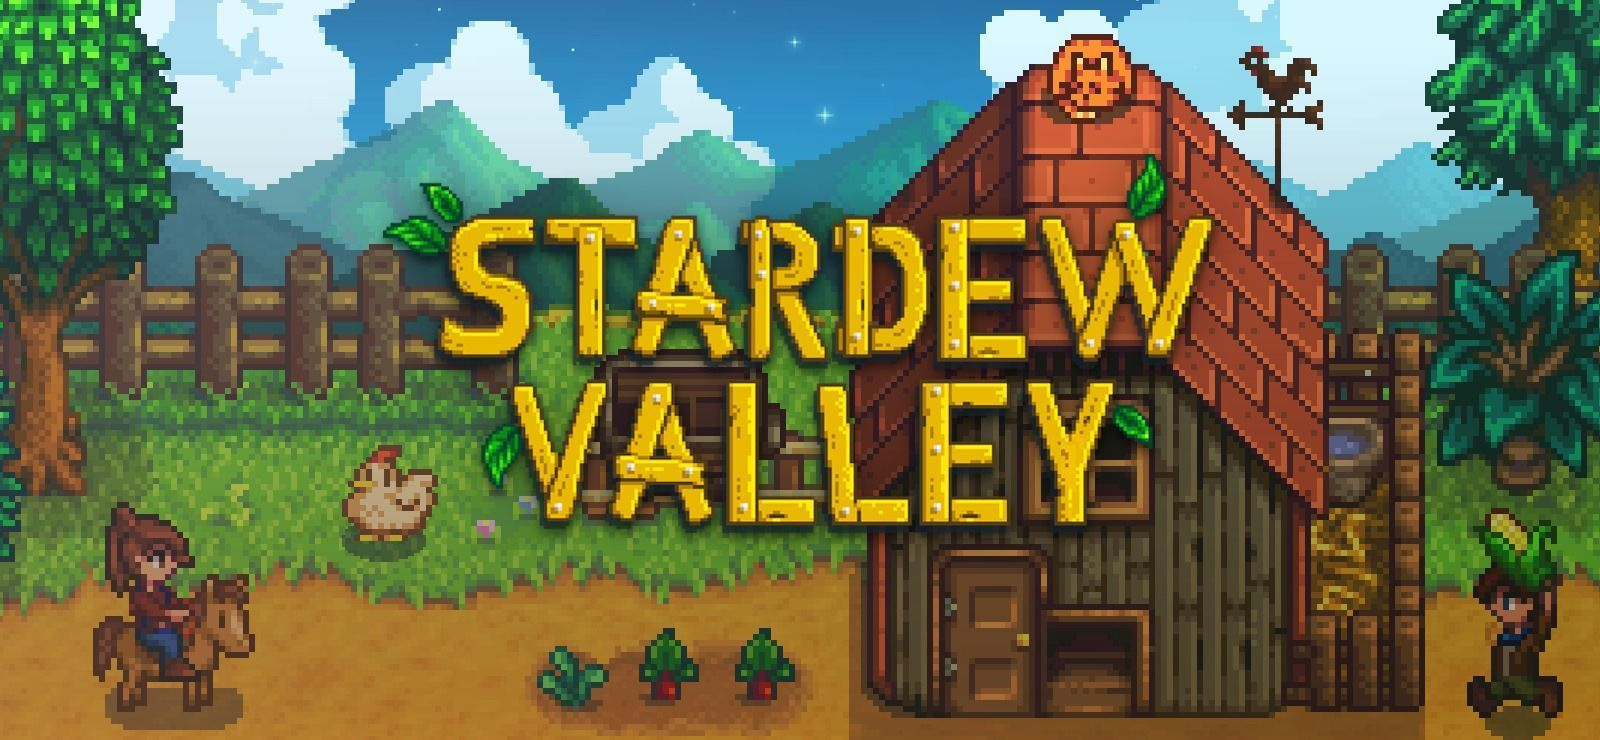 Le mode multijoueur de Stardew Valley en bêta sur Steam